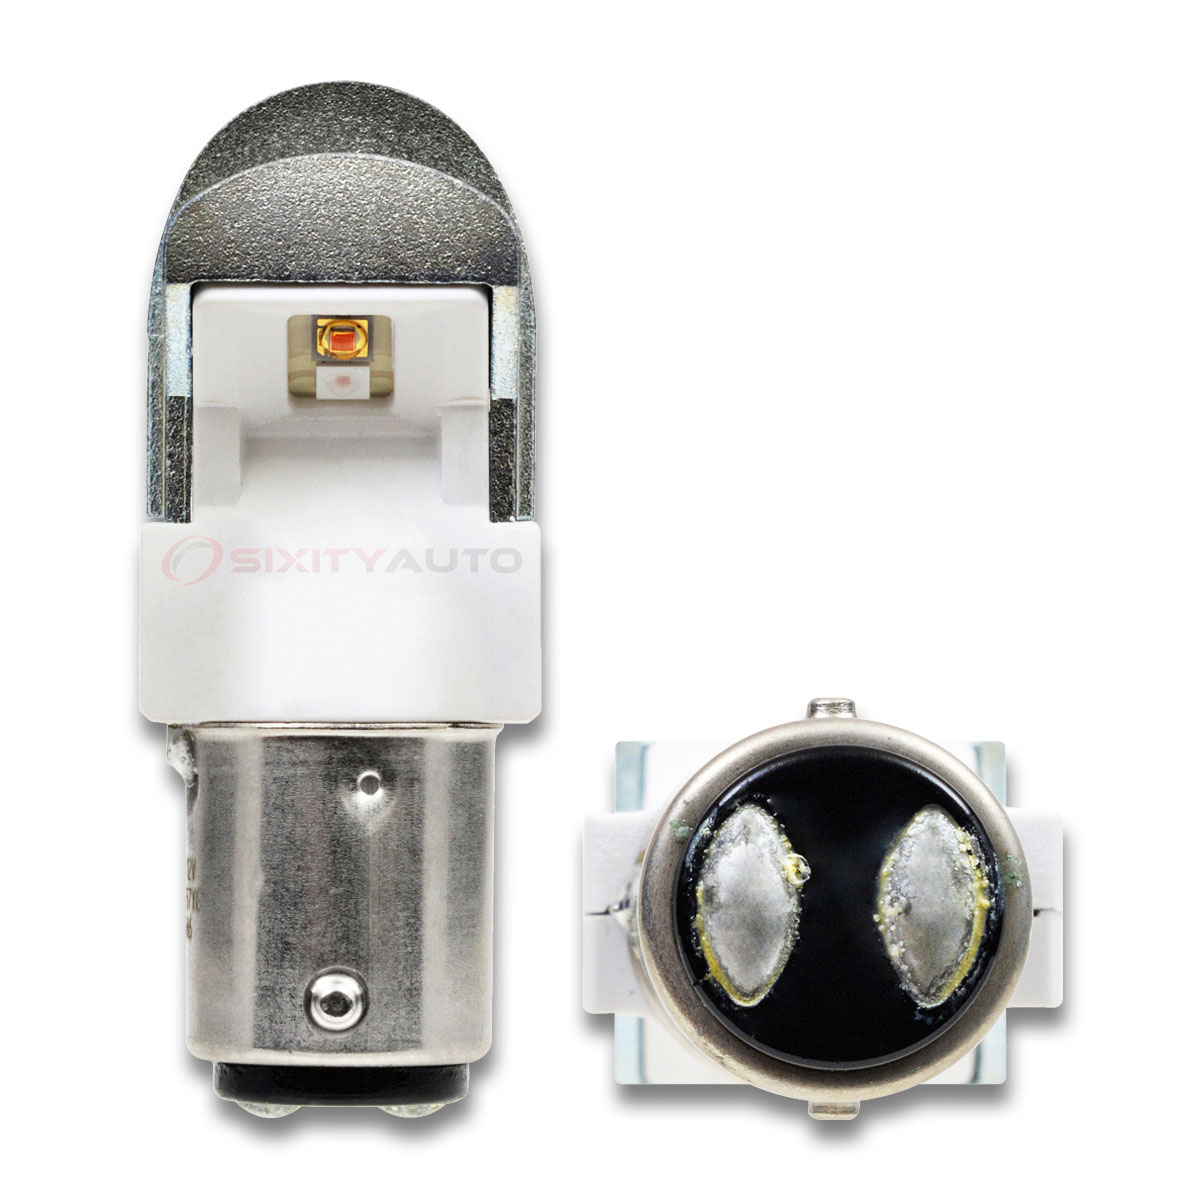 Sylvania Zevo Front Turn Signal Light Bulb For Honda Passport 1999 Accord Interior Led And Exterior Lights Allow Easy Replacement Of Dingy Yellow Incandescent Bulbs With A Brighter Whiter Sharper Source